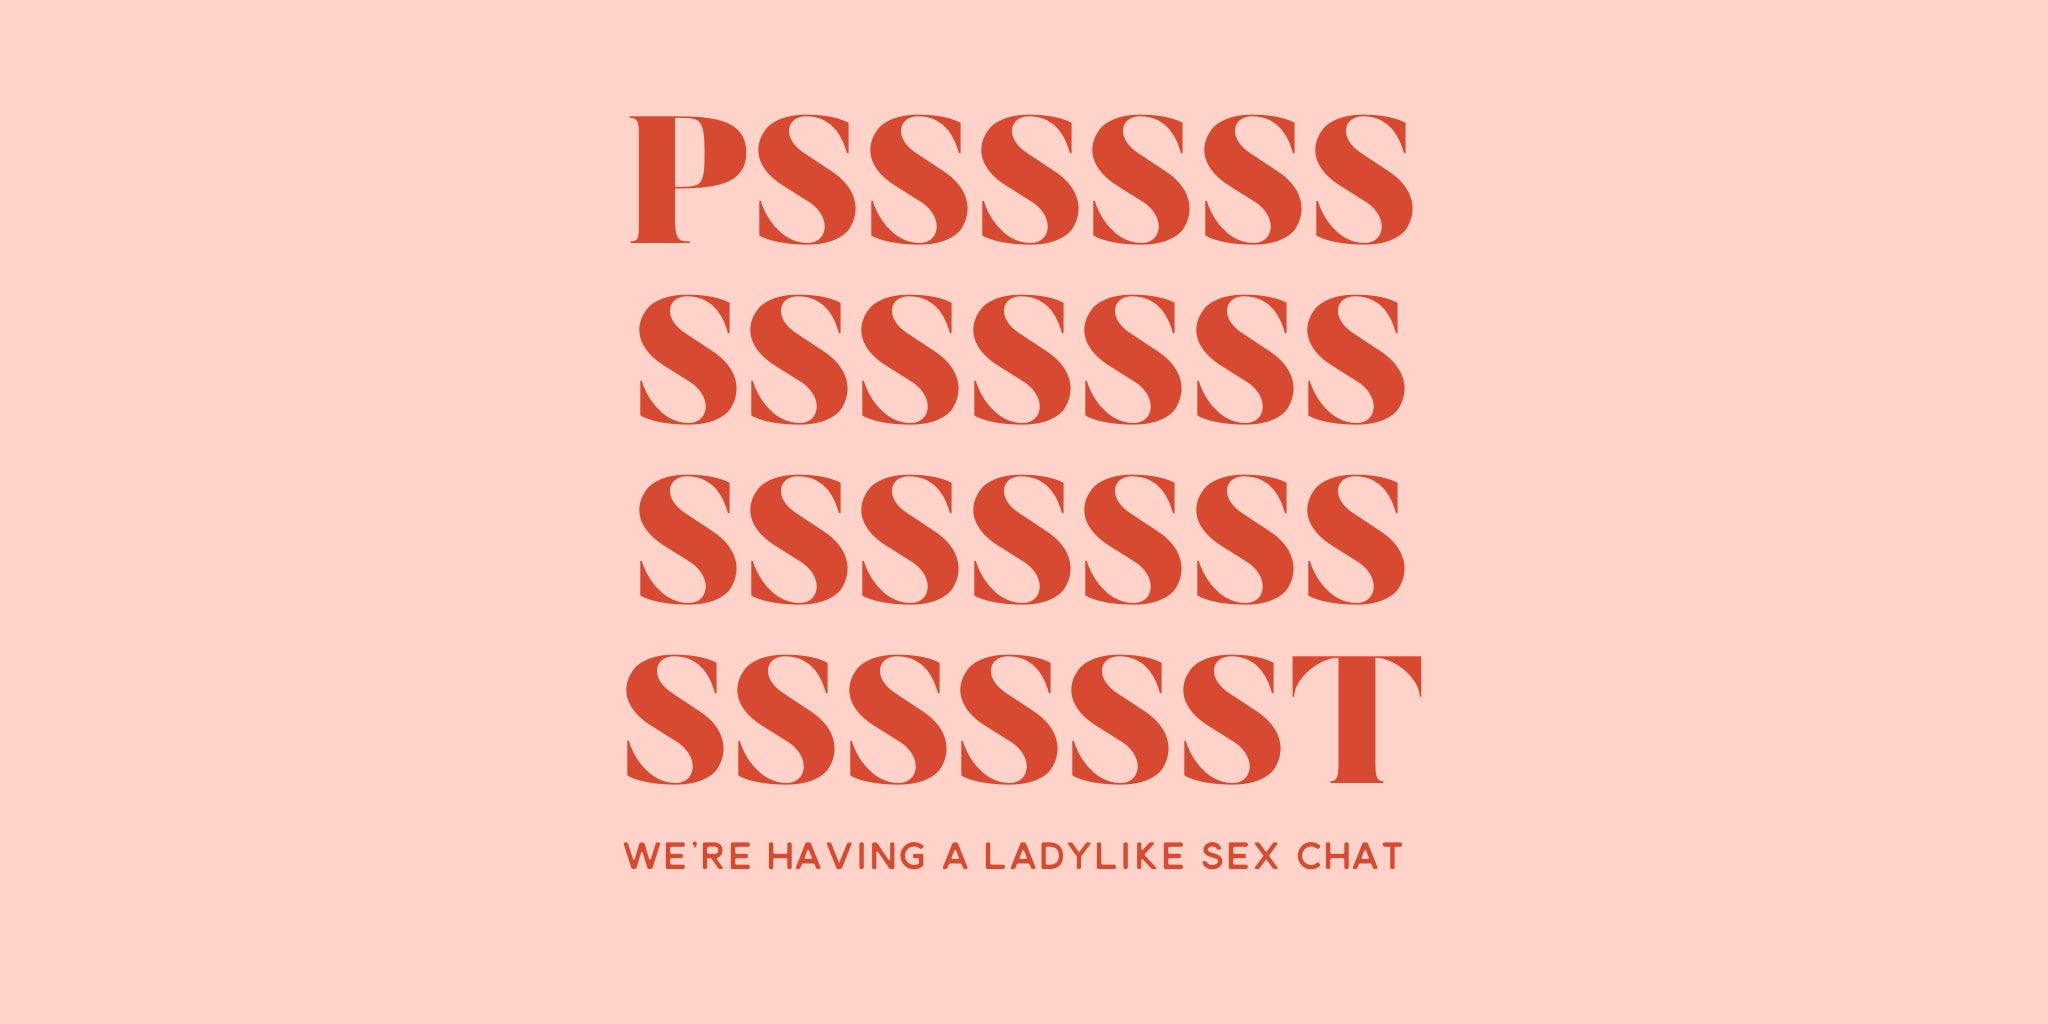 Ladylike Sex Chat